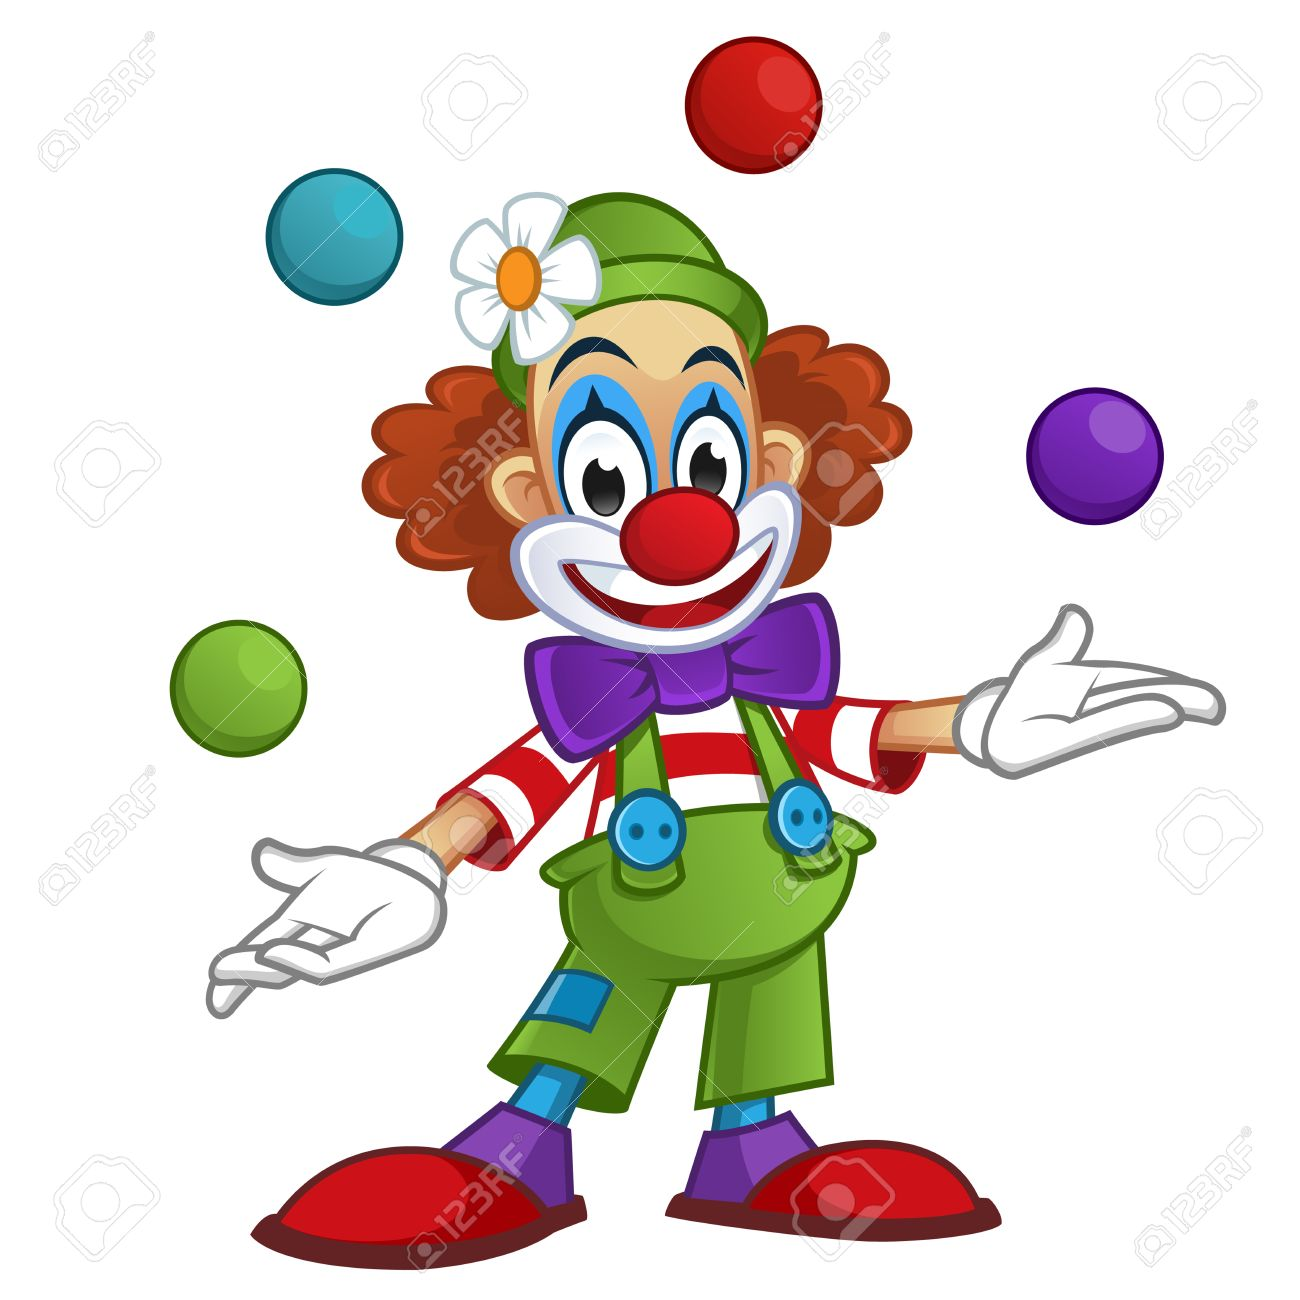 Man dressed with clothes clown, the clown is playing with balls - 50603891